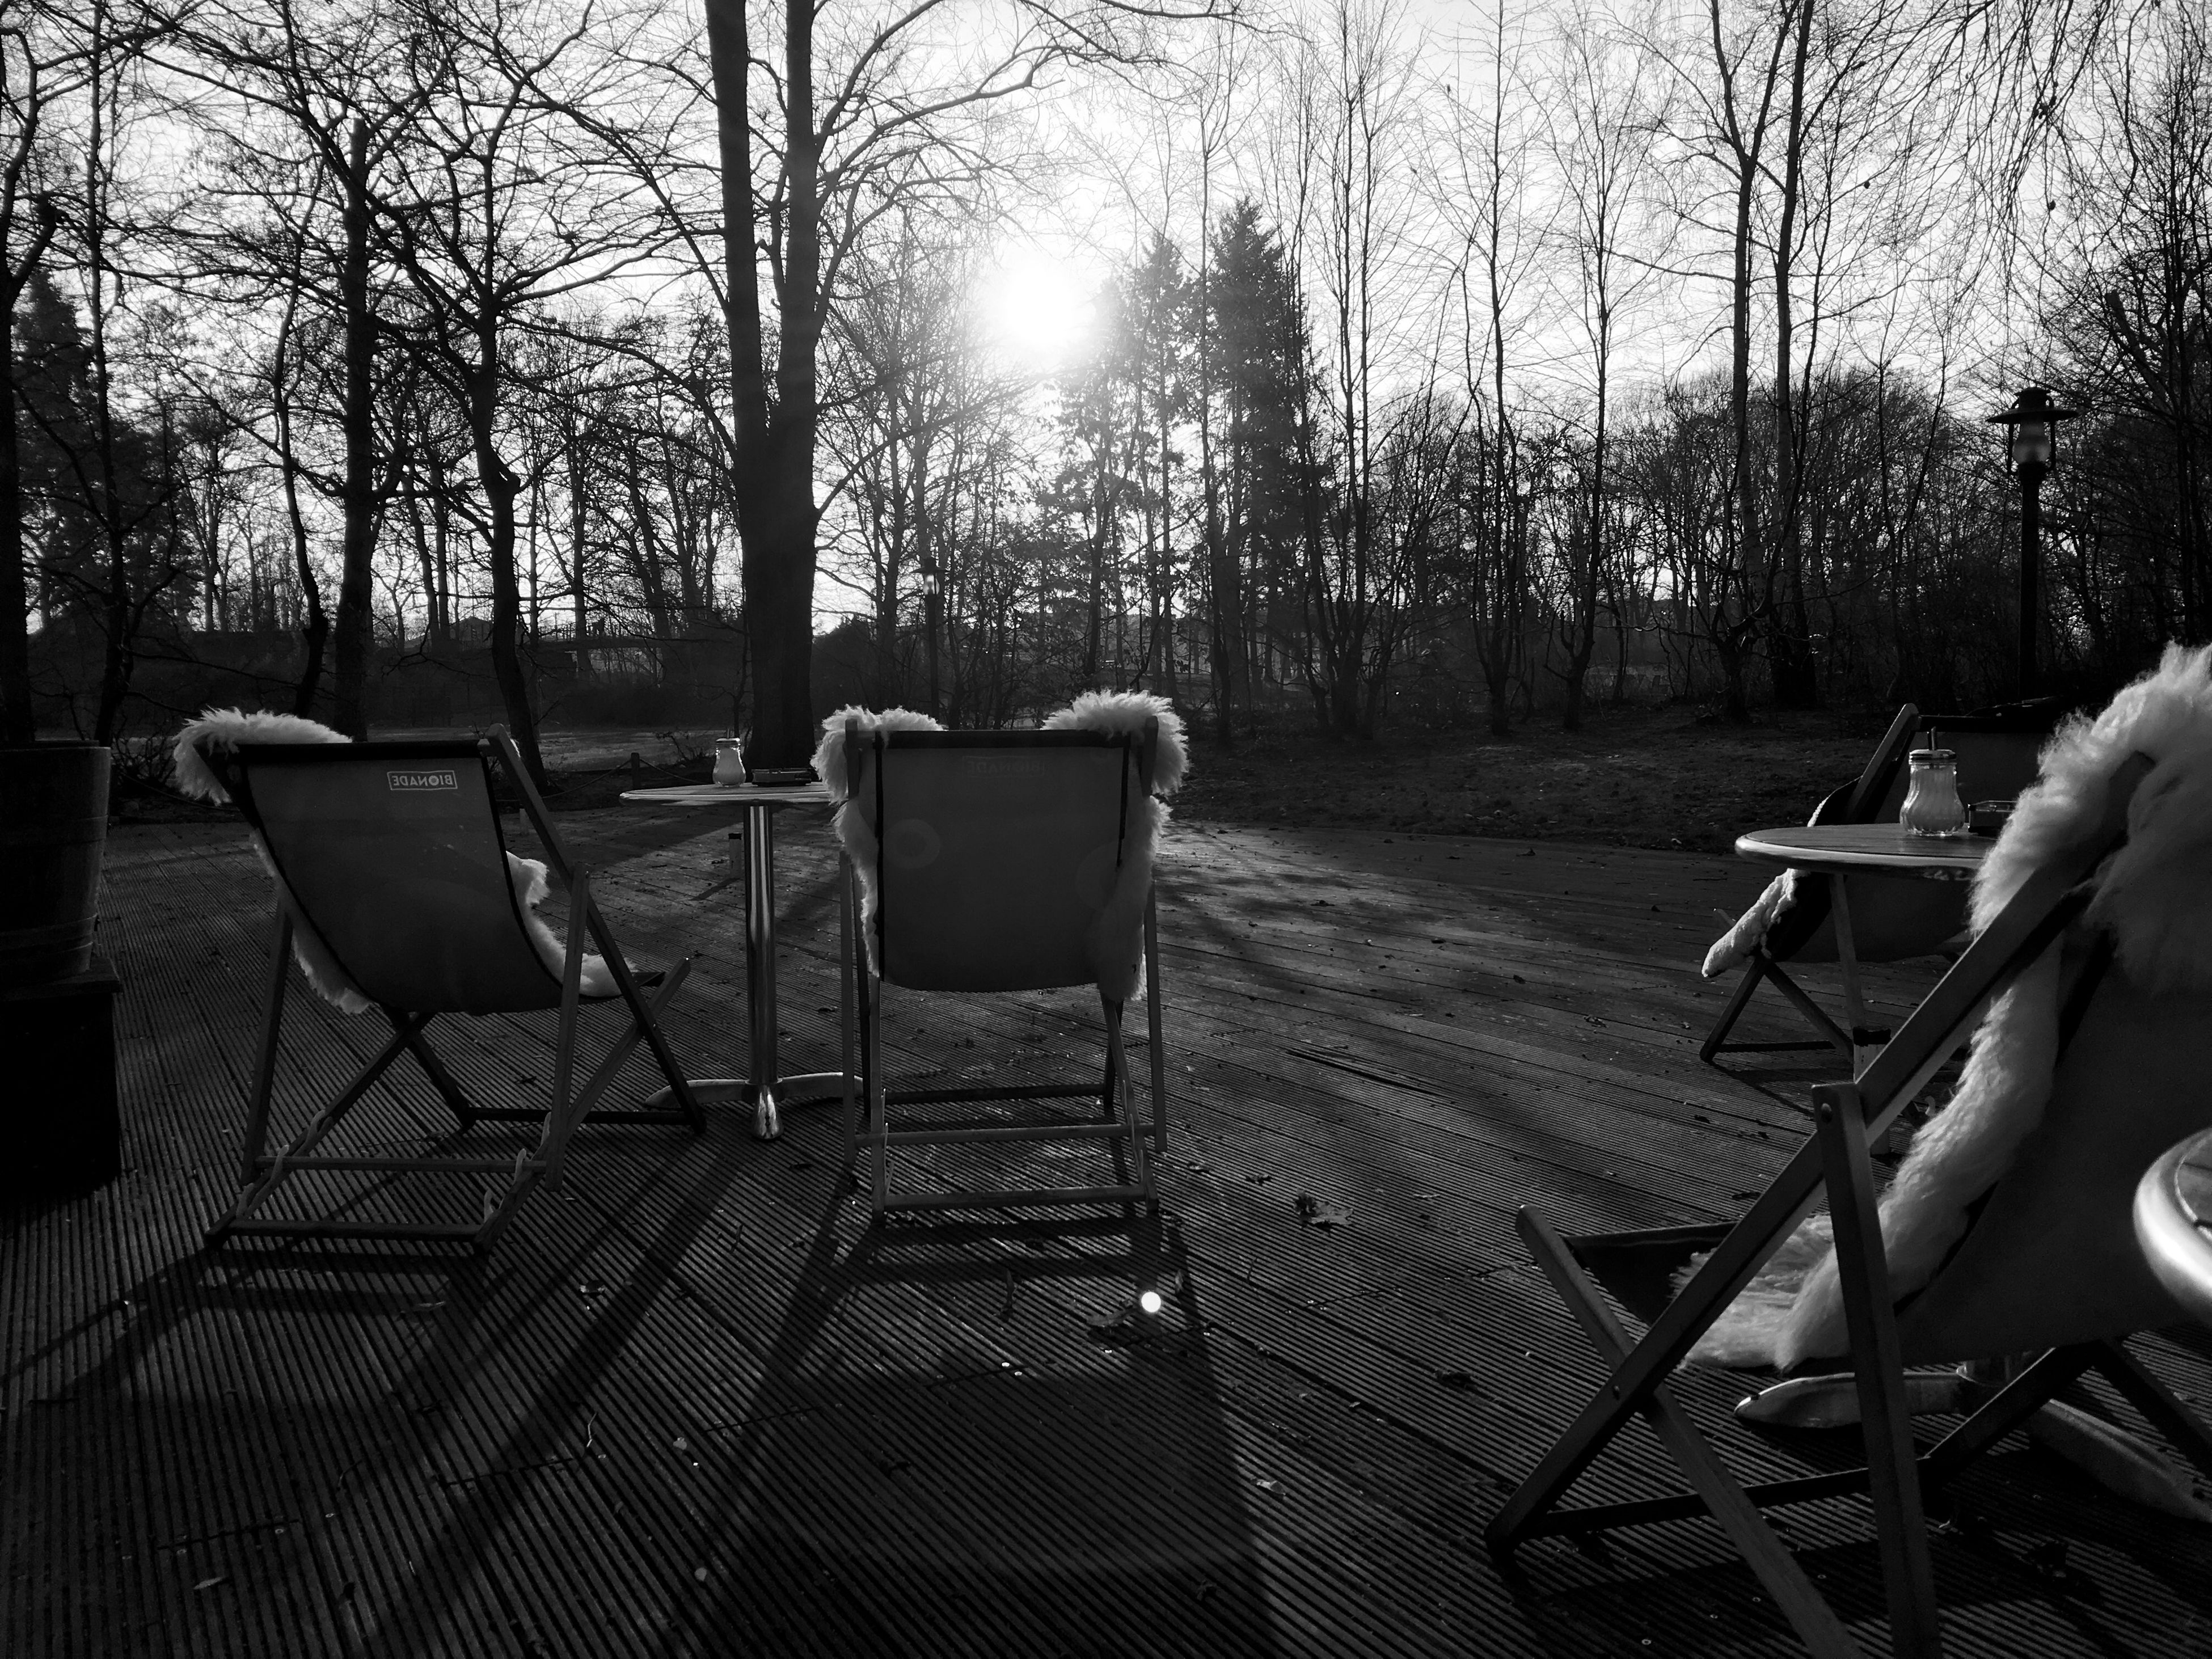 chair, empty, absence, tree, seat, sunlight, bench, relaxation, table, tranquility, park bench, sun, shadow, nature, furniture, sunbeam, day, wood - material, no people, tranquil scene